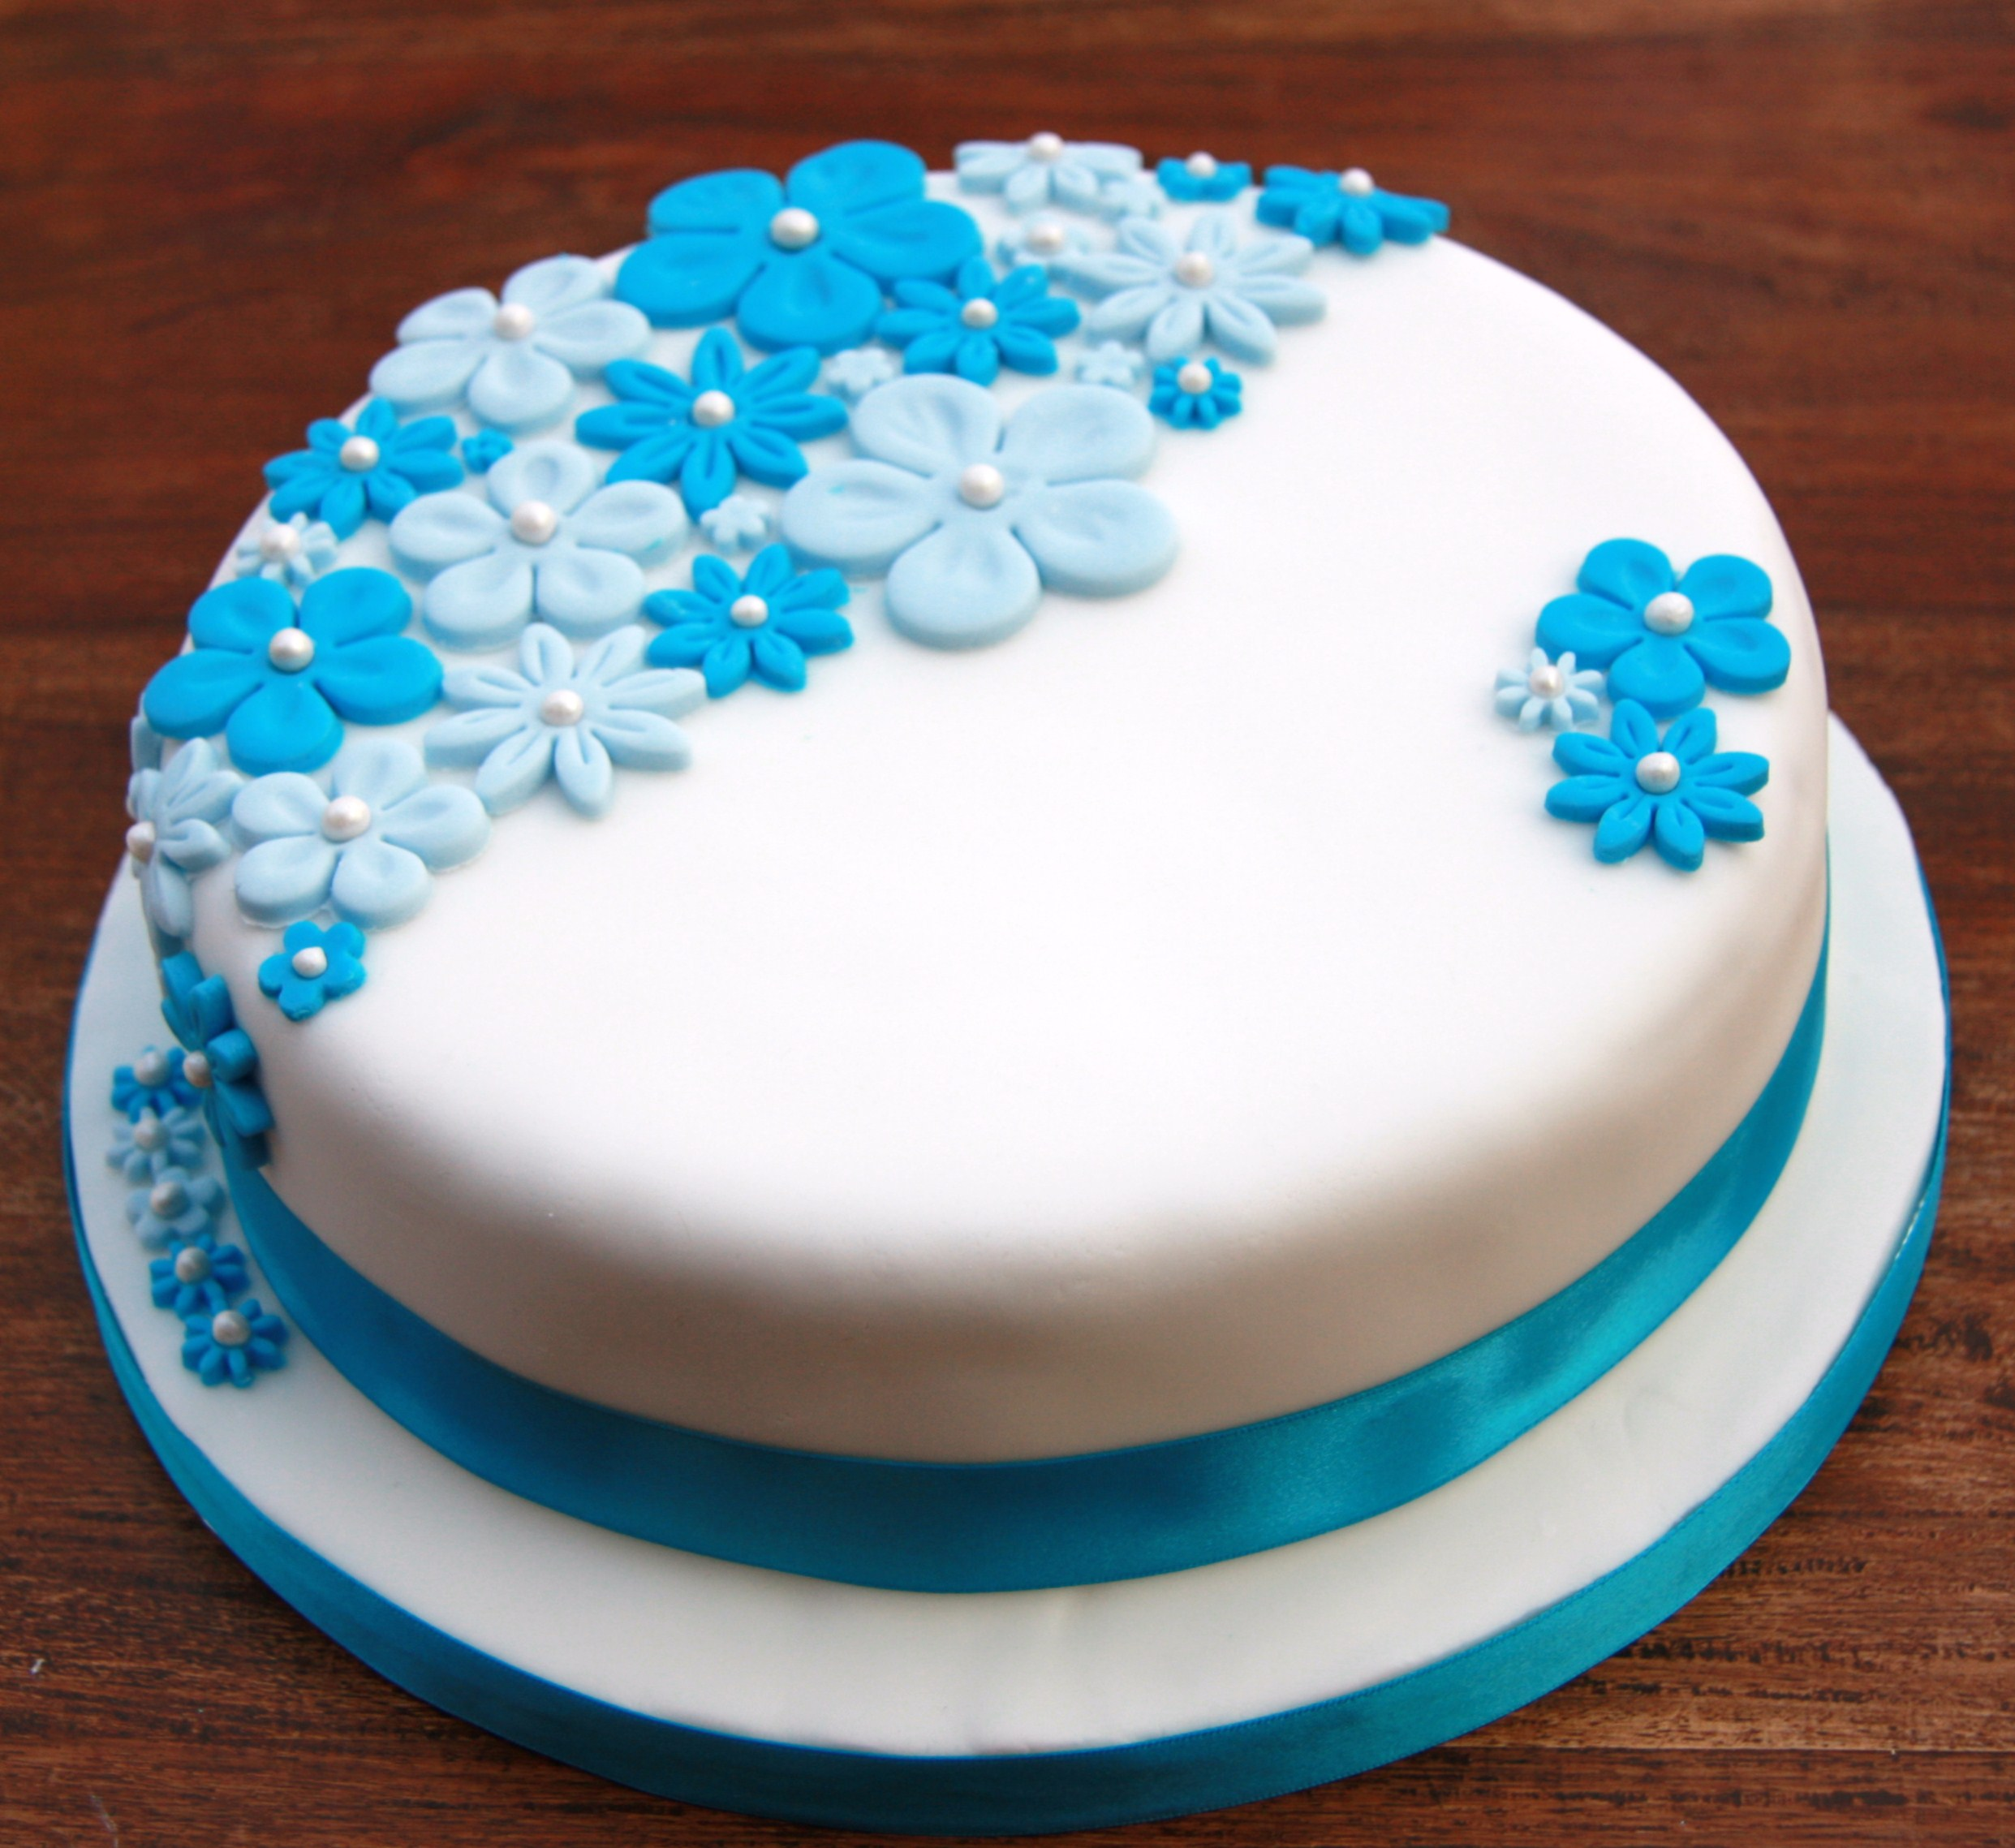 Birthday Cake Images With Photo : Birthday Cake with Blue Flowers   lovinghomemade